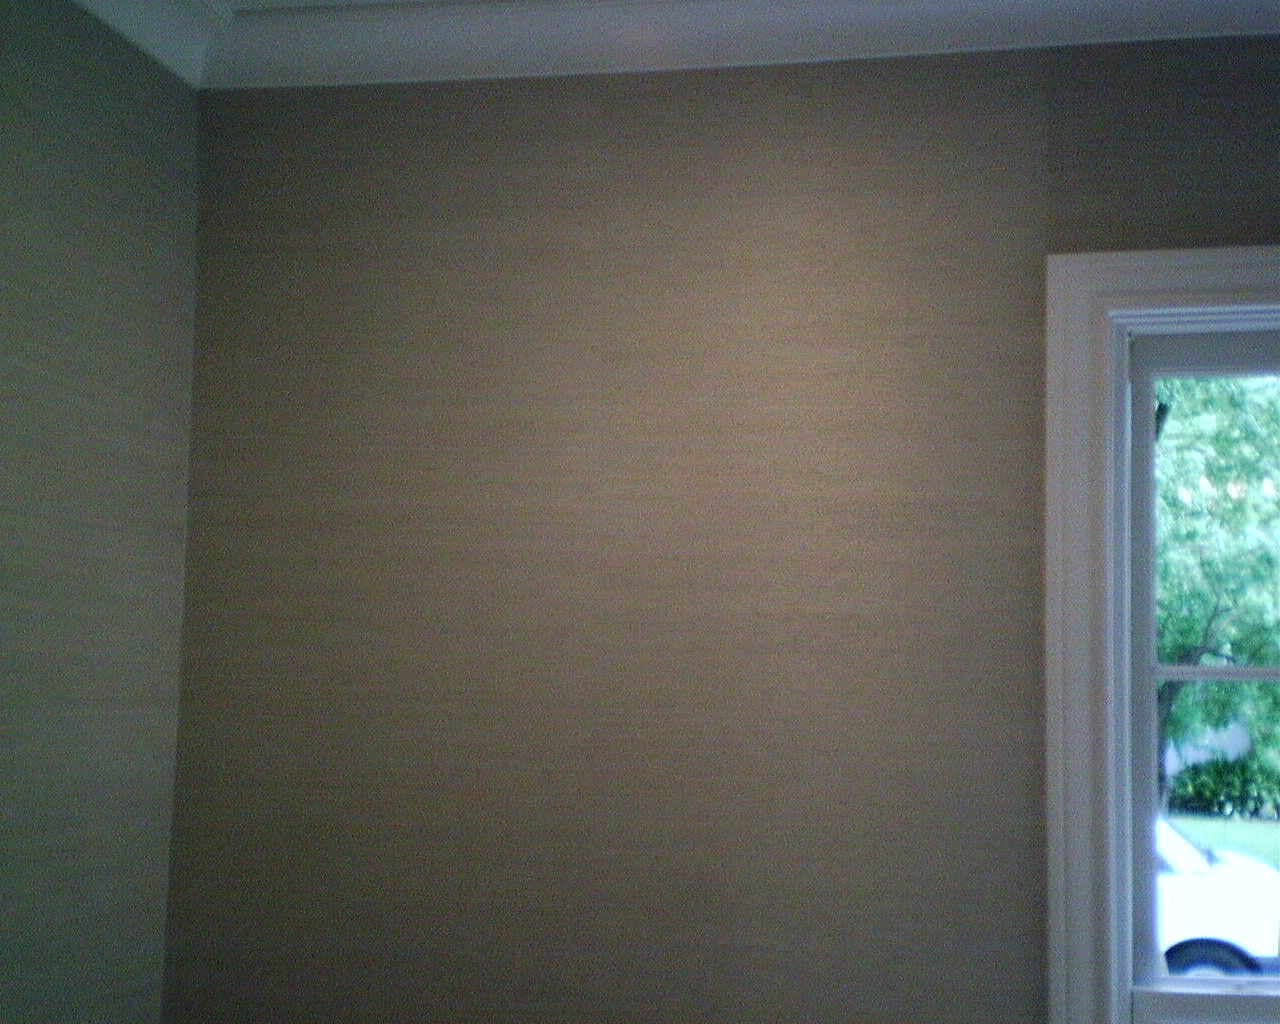 Painting over grasscloth wallpaper - Digital Image